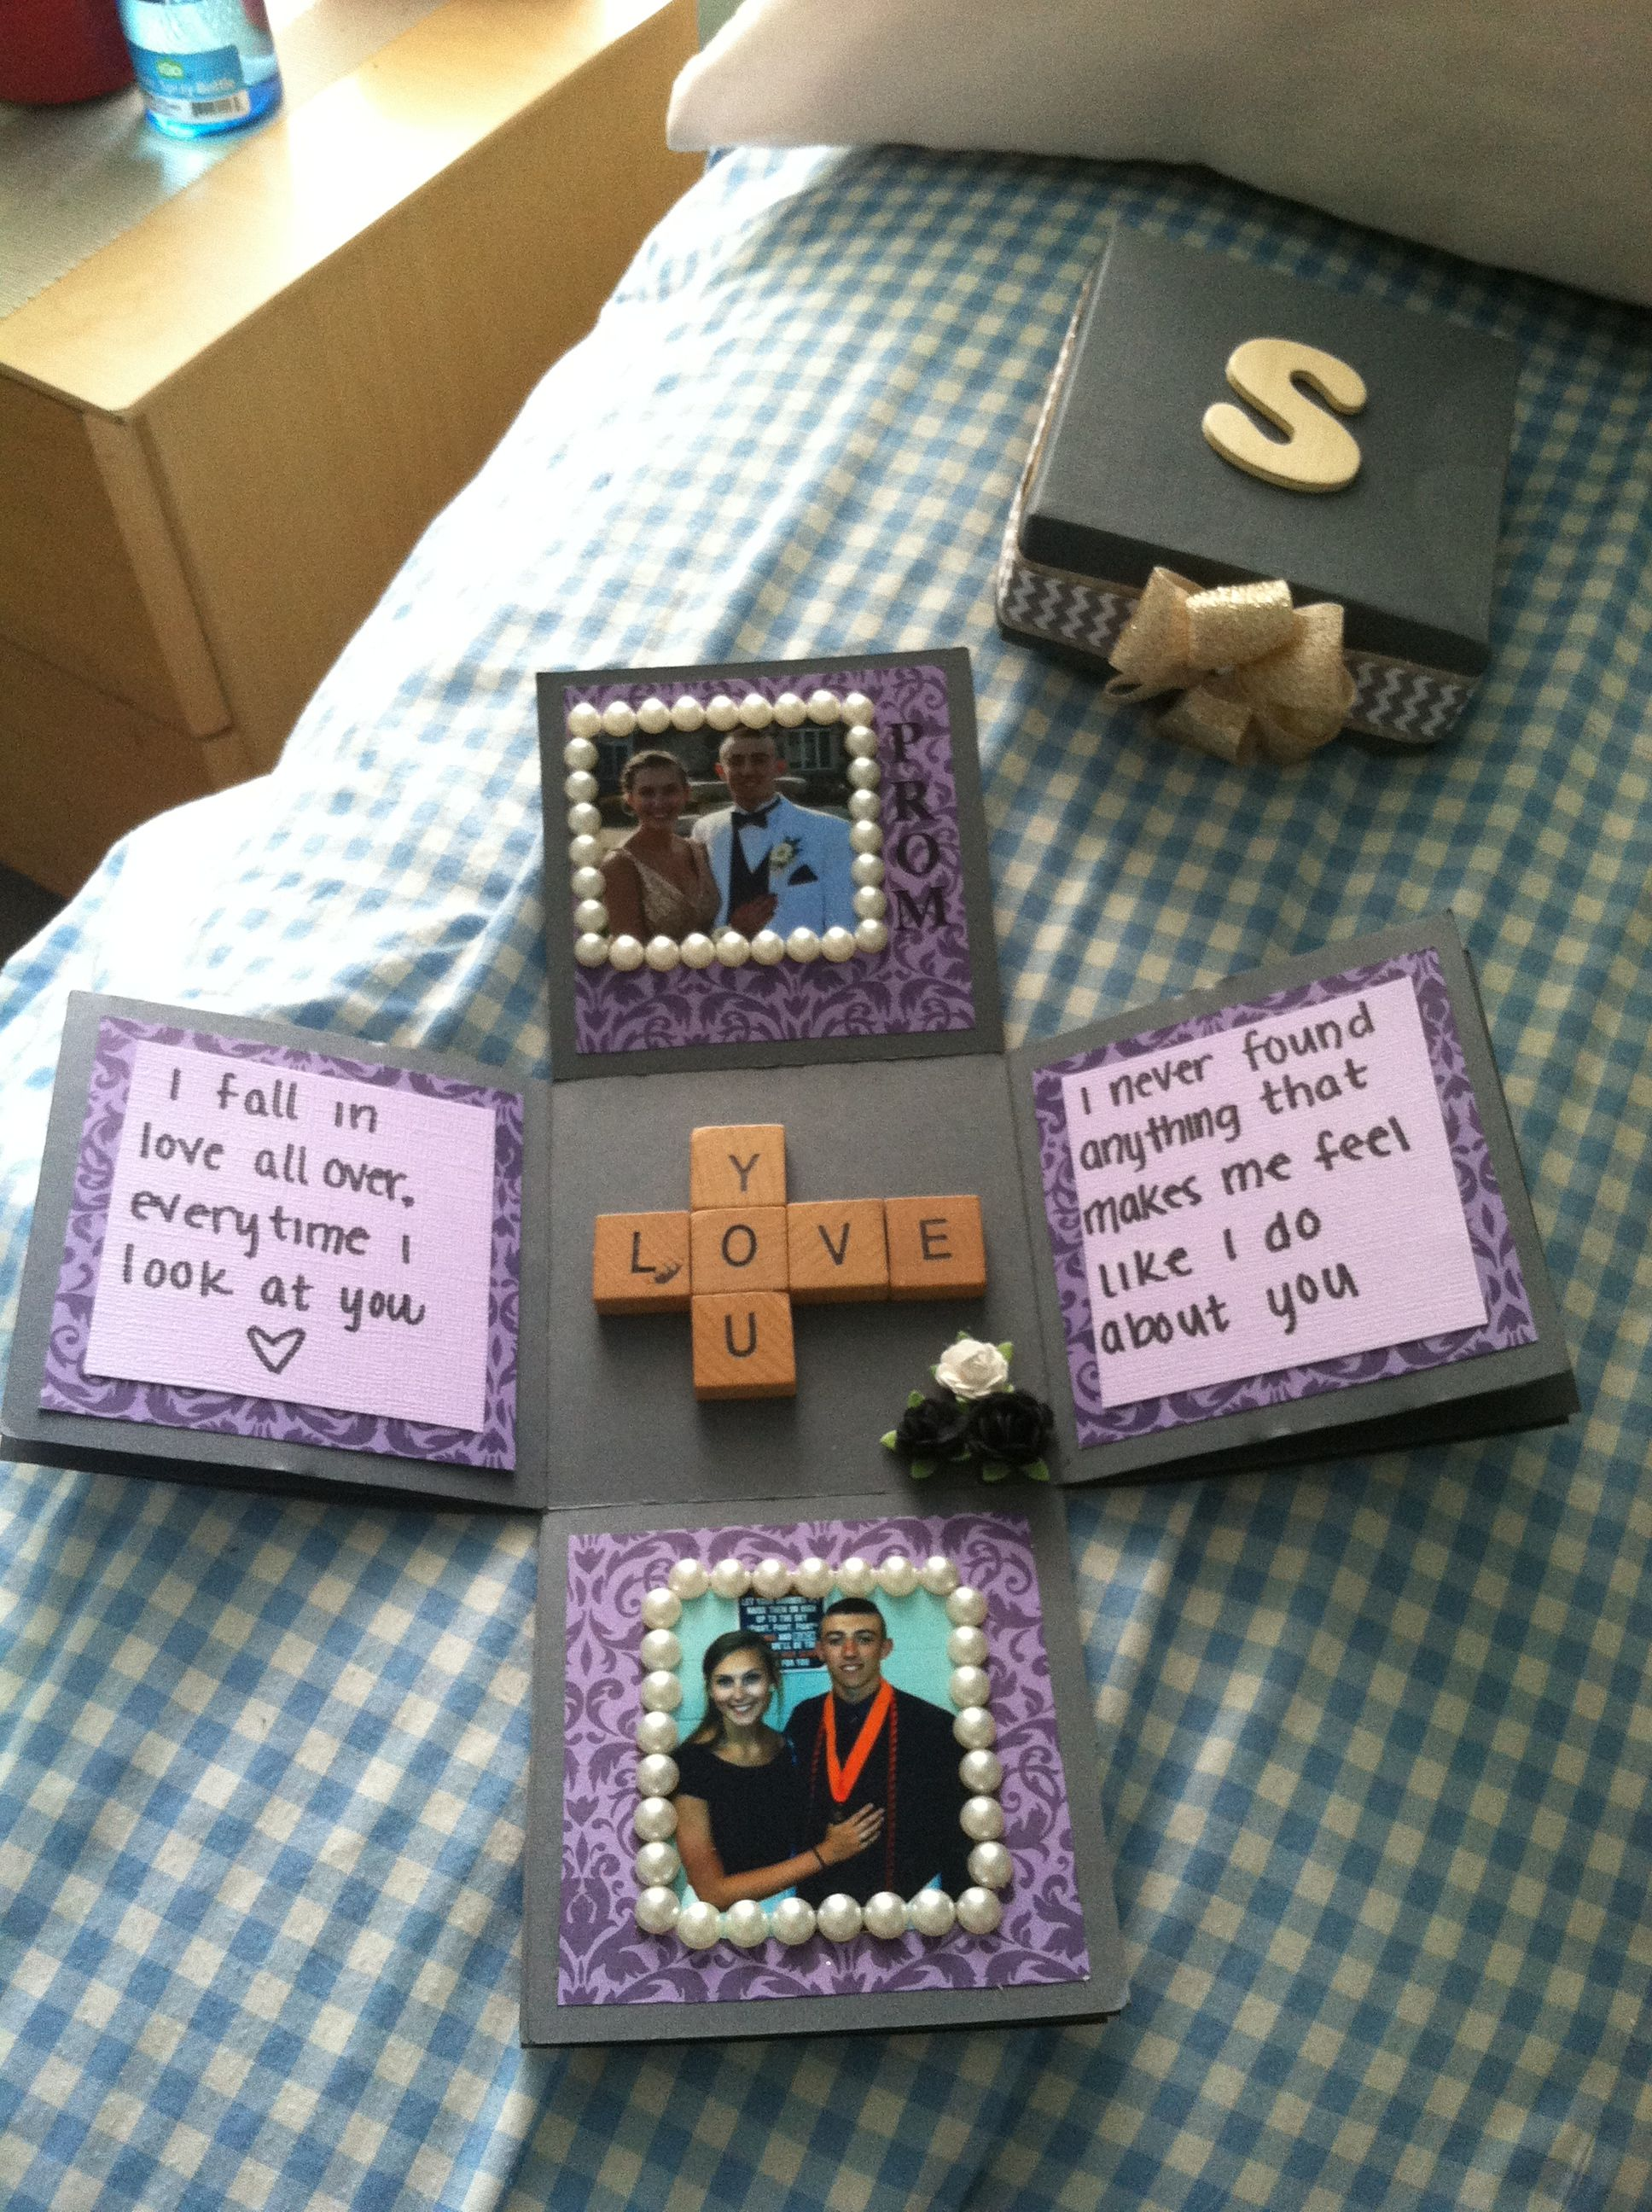 How to make a romantic scrapbook - Scrapbook Is A Popular And Clever Way To Store And Organize Photos And Memories It Is Romantic For Women To Create A Scrapbook For Their Boyfriends